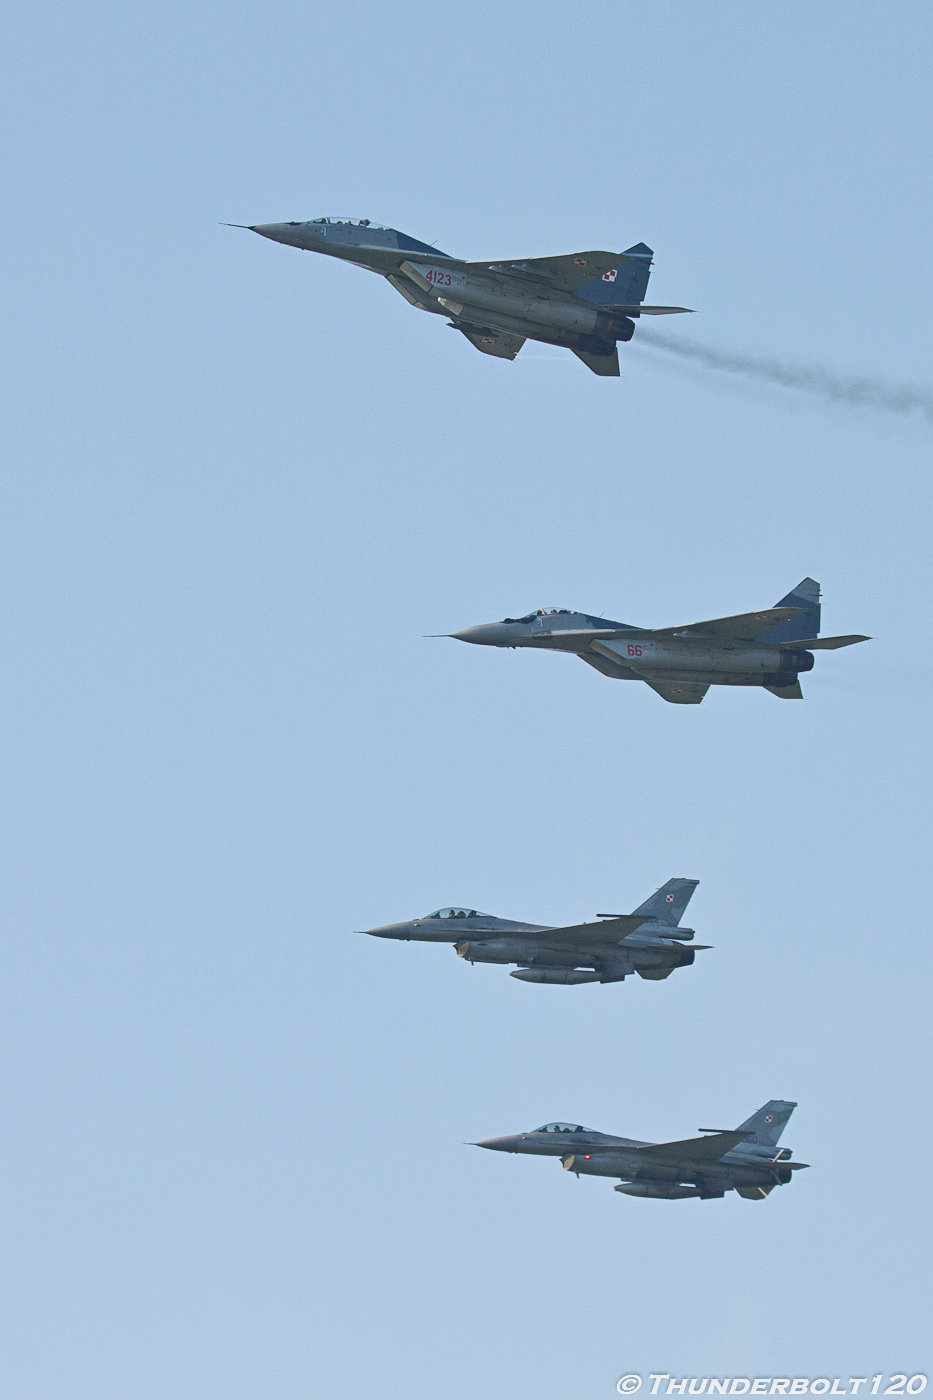 2x Mig-29 and 2x F-16